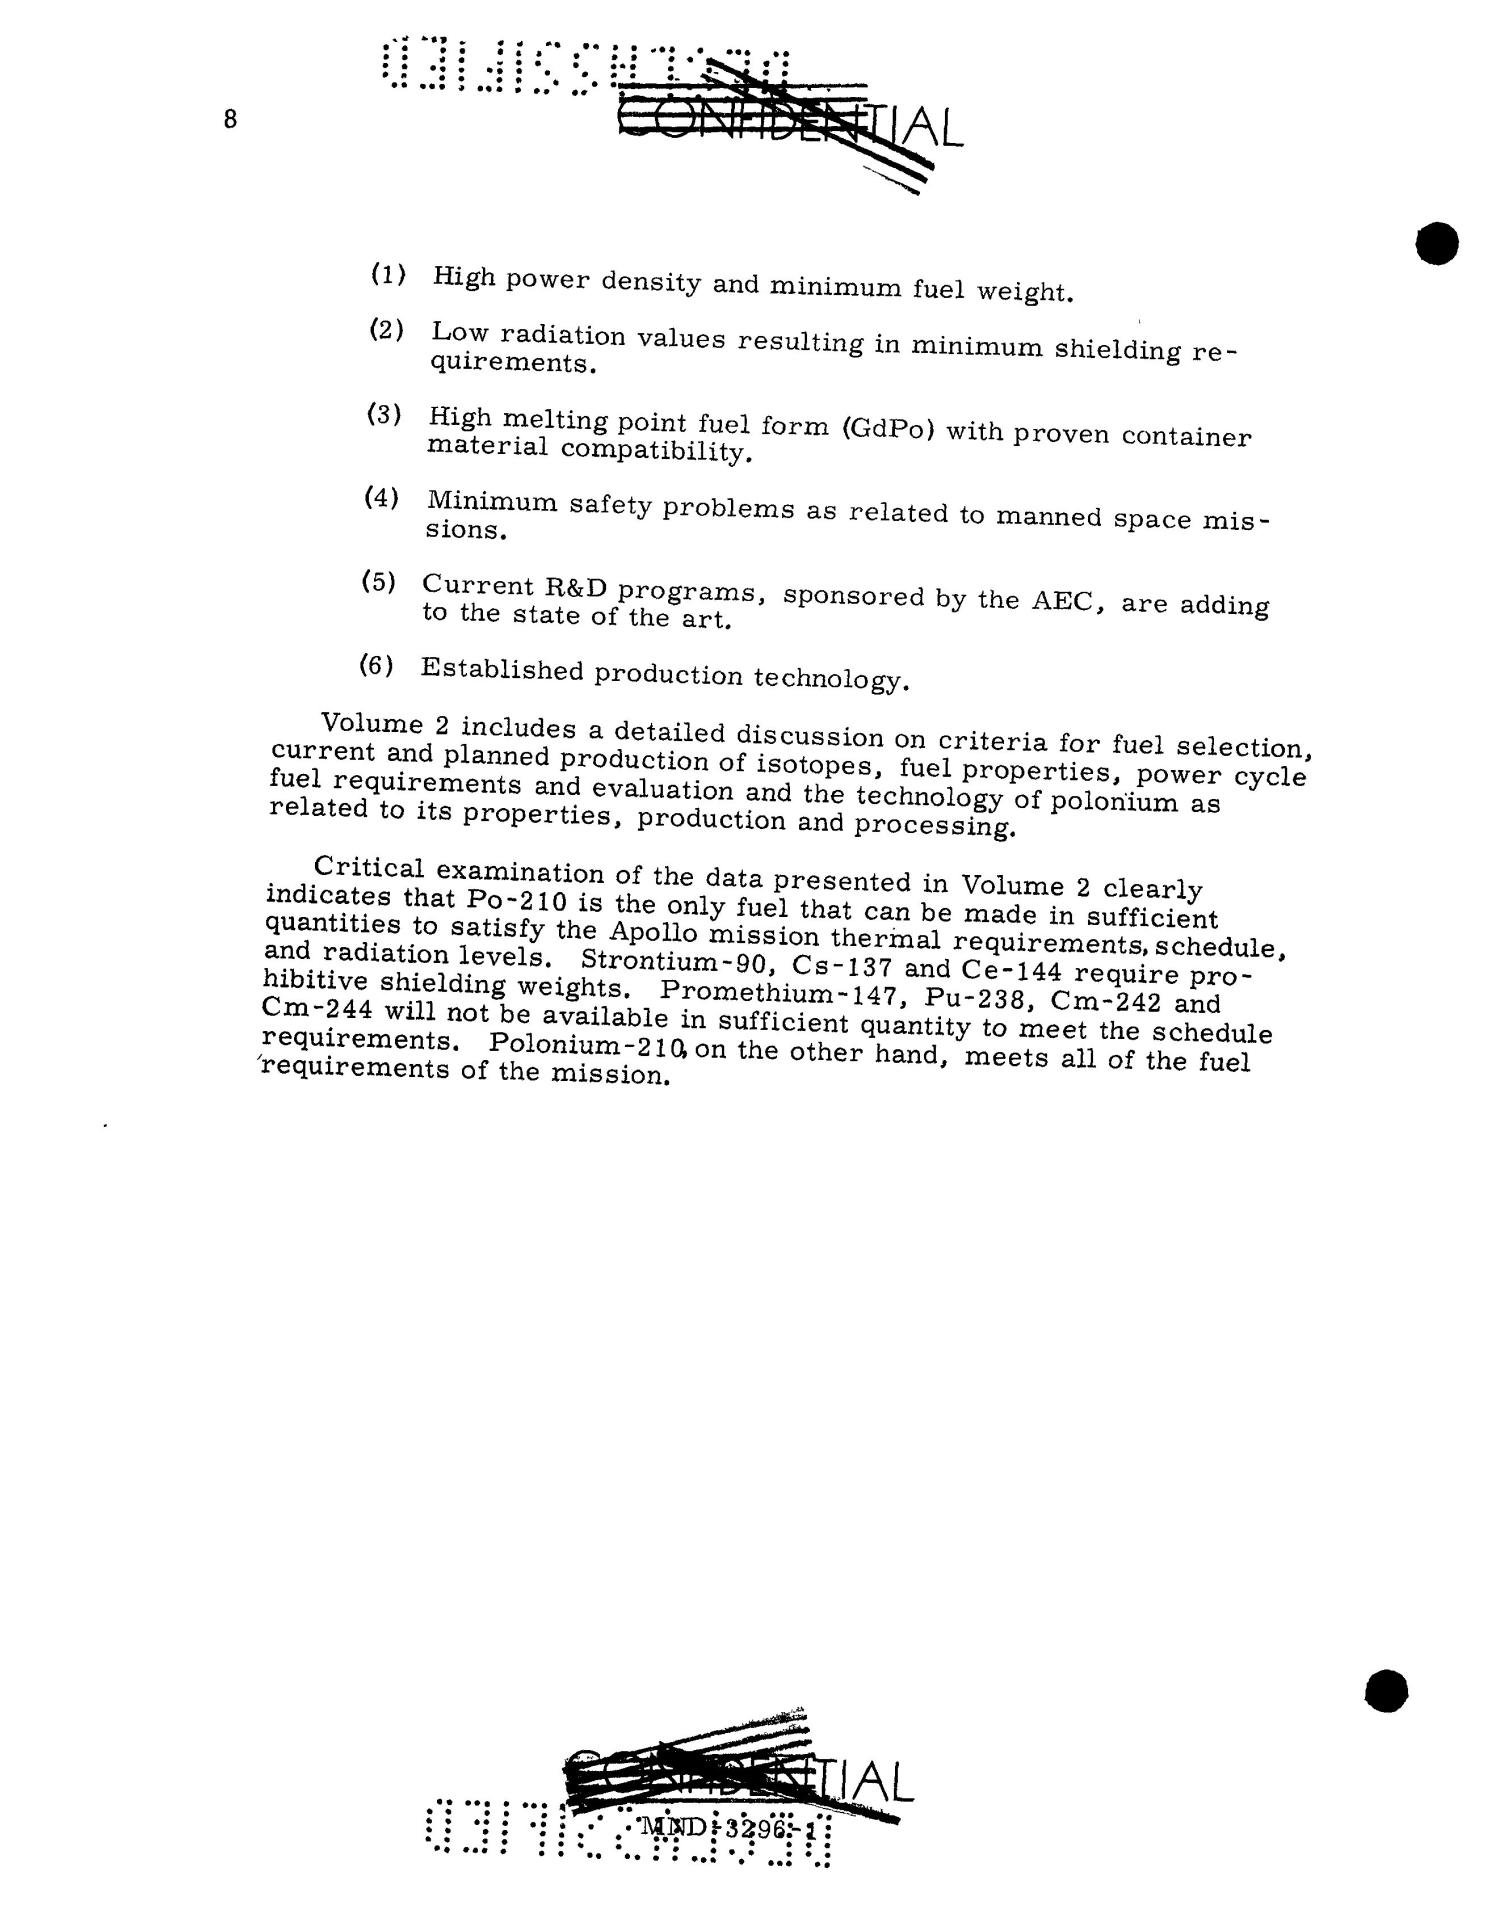 Feasibility of Isotopic Power for Manned Lunar Missions. Volume 1. Summary.                                                                                                      [Sequence #]: 19 of 61